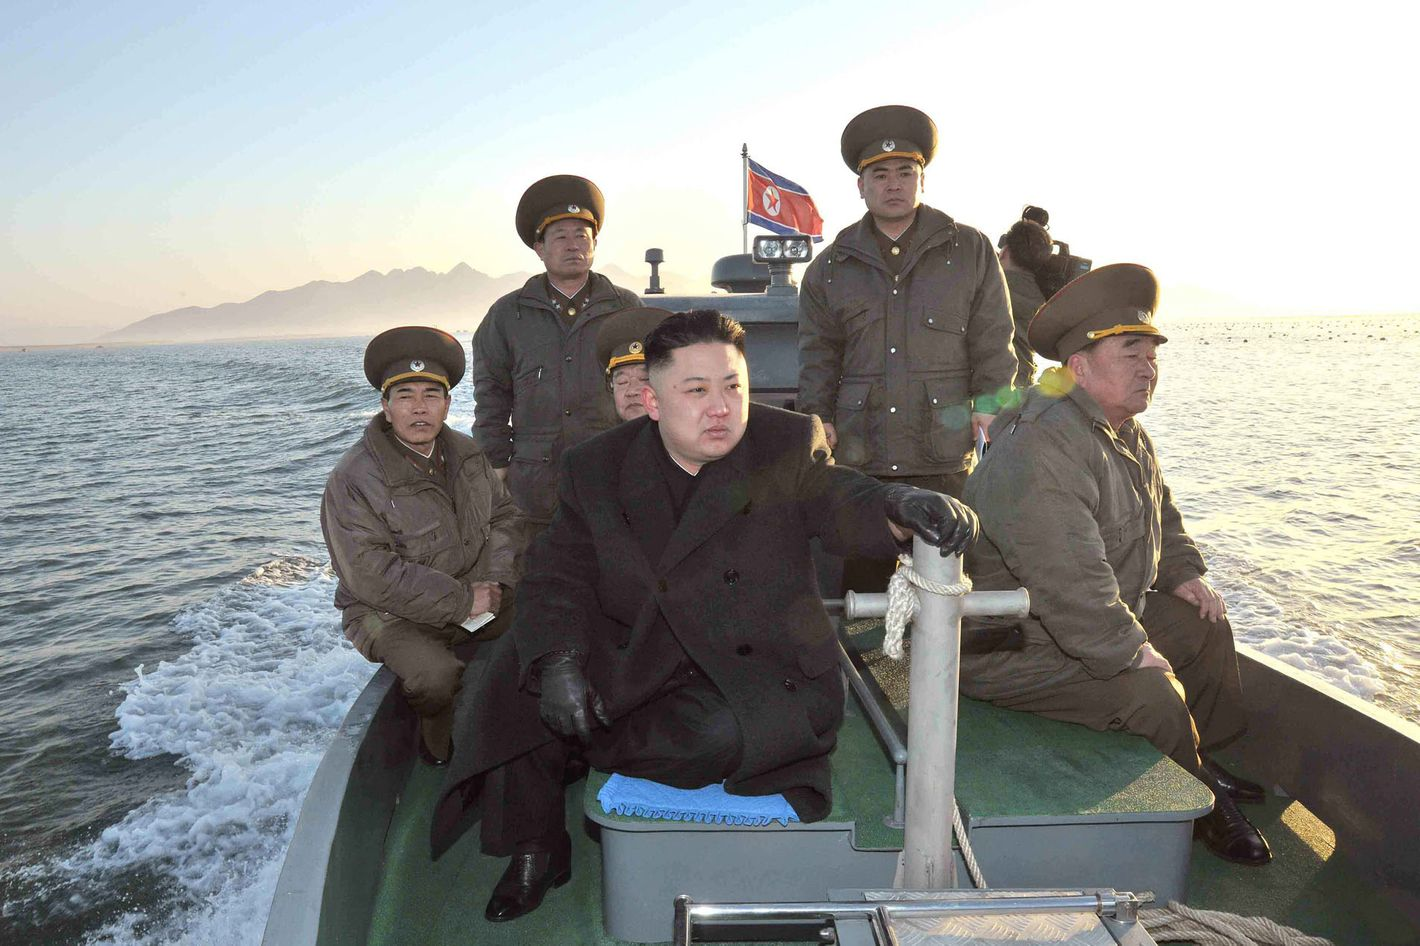 """In this March 11, 2013 photo released by the Korean Central News Agency (KCNA) and distributed March 12, 2013 by the Korea News Service, North Korean leader Kim Jong Un rides on a boat, heading for the Wolnae Islet Defense Detachment, North Korea, near the western sea border with South Korea. North Korea's young leader urged front-line troops to be on """"maximum alert"""" for a potential war as a state-run newspaper said Pyongyang had carried out a threat to cancel the 1953 armistice that ended the Korean War."""